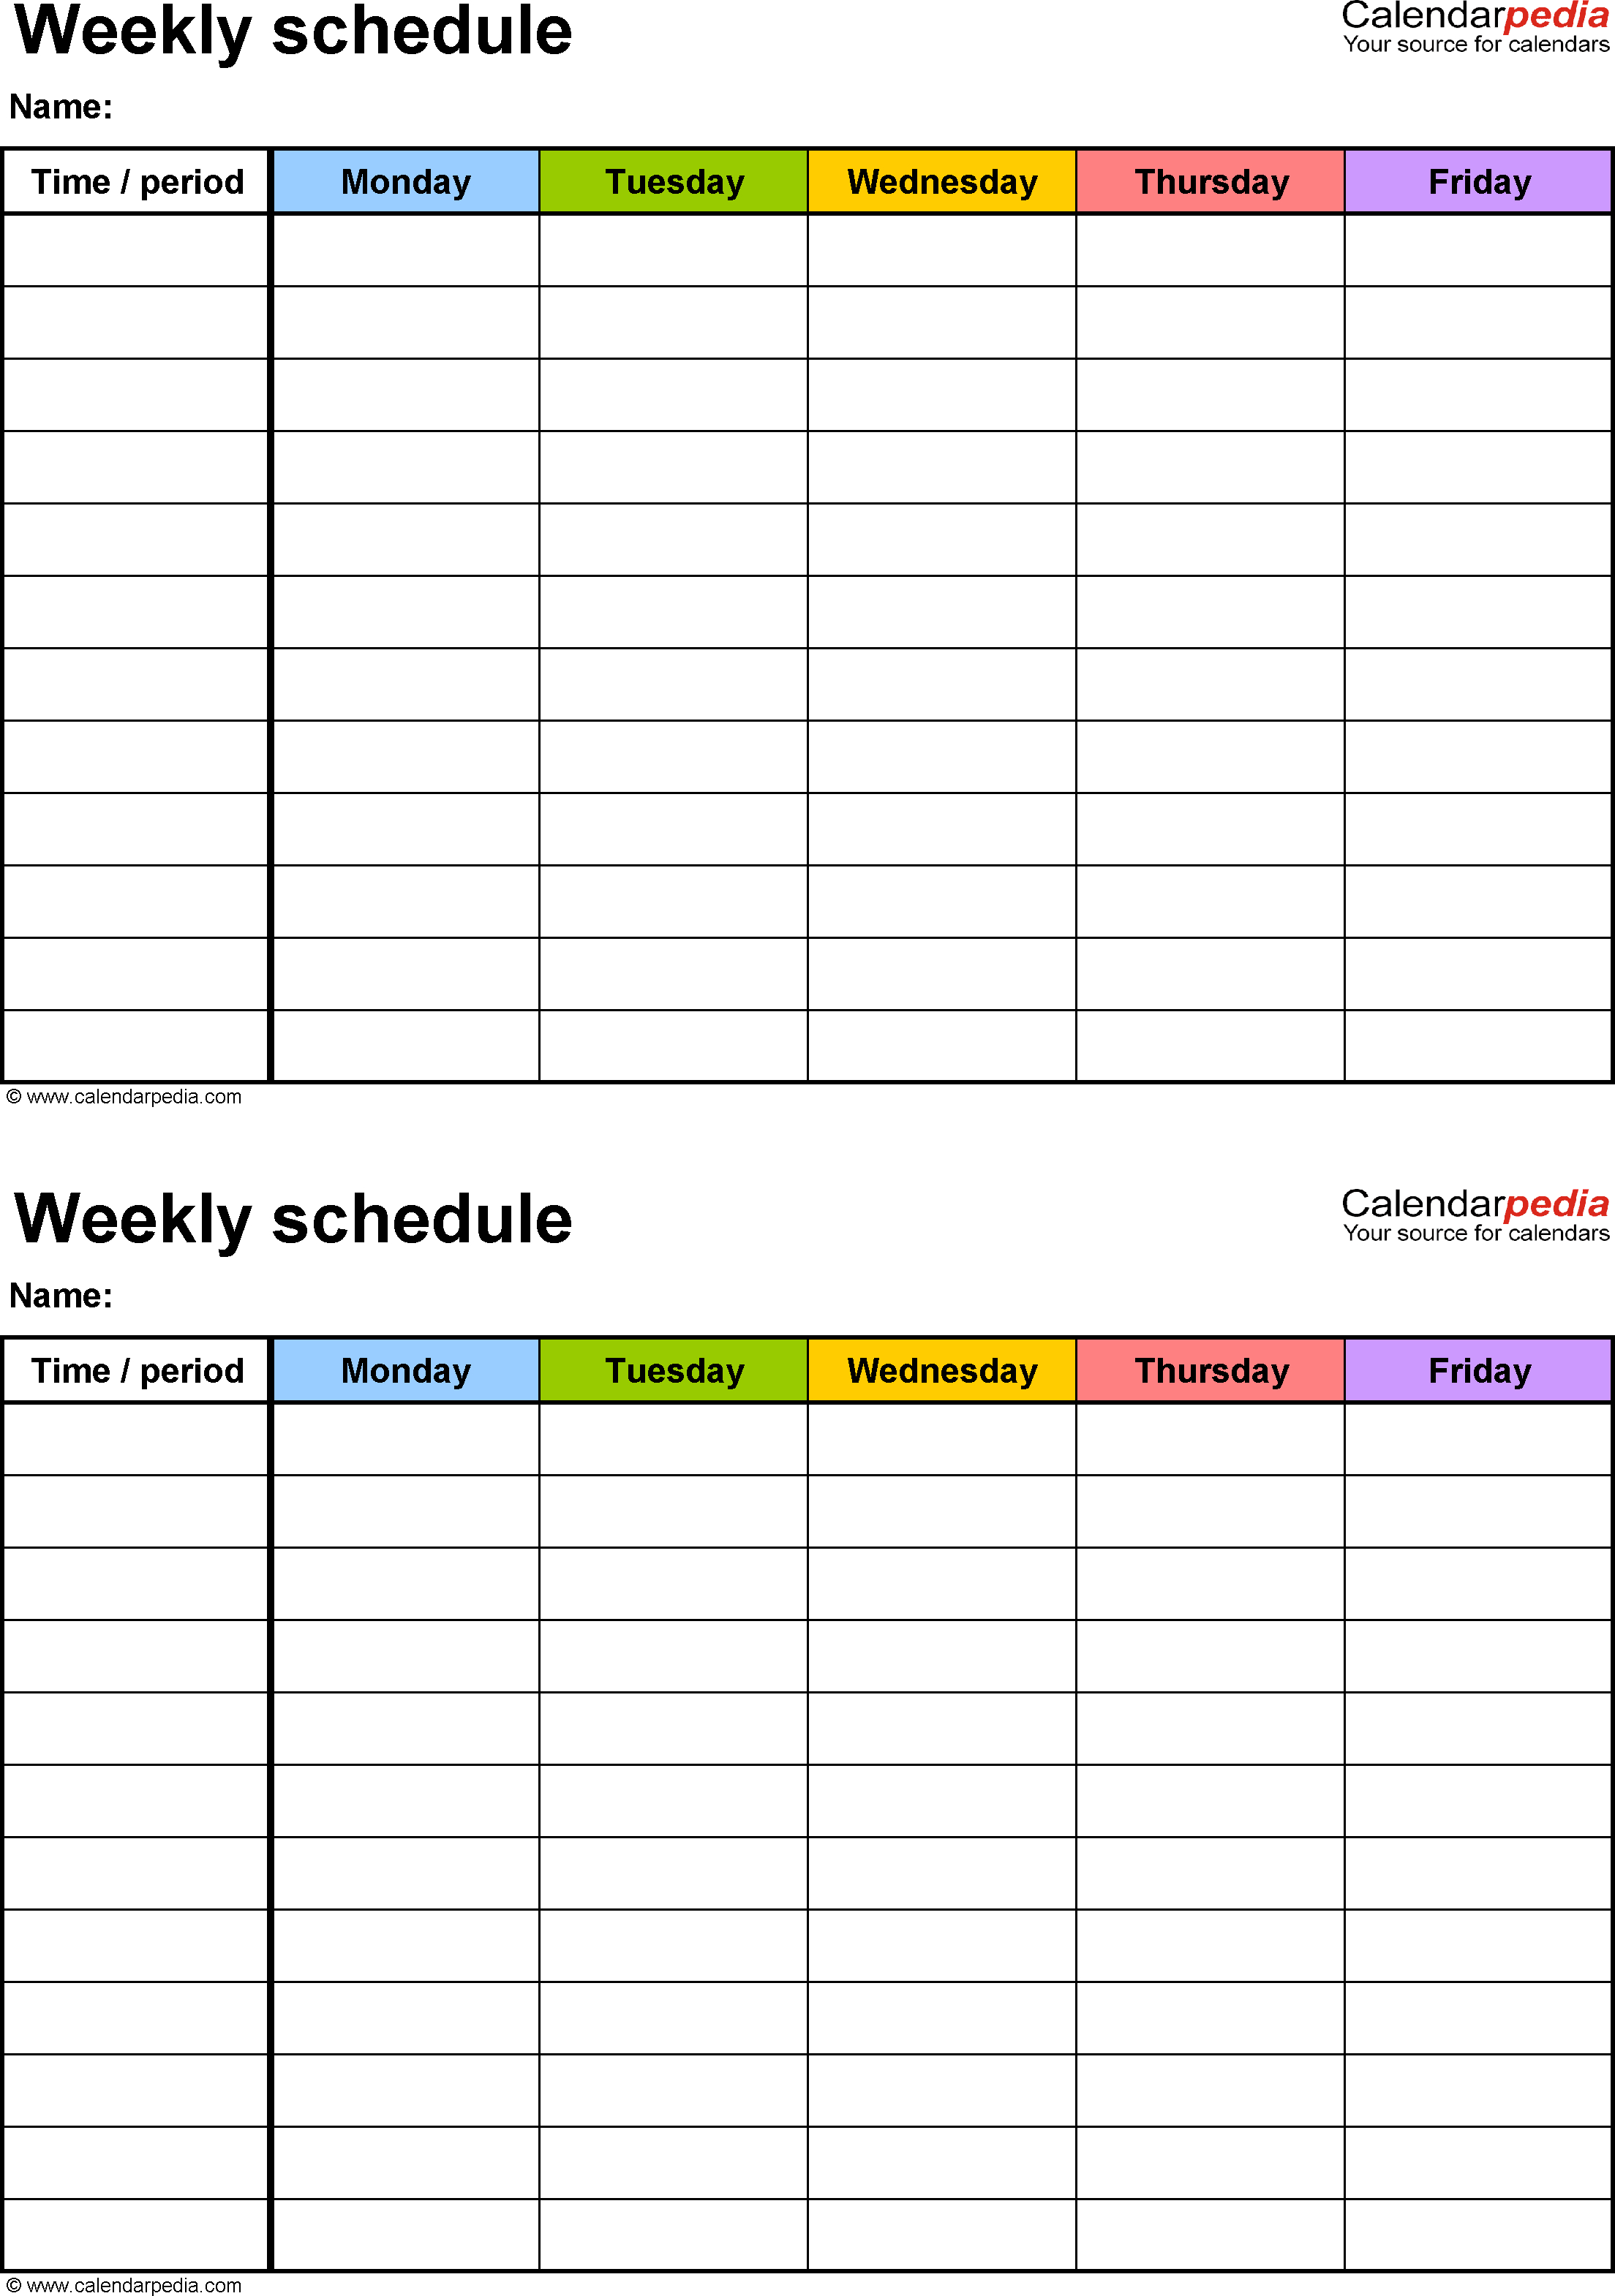 Free Weekly Schedule Templates For Word - 18 Templates intended for Blank Two Week Schedule Template